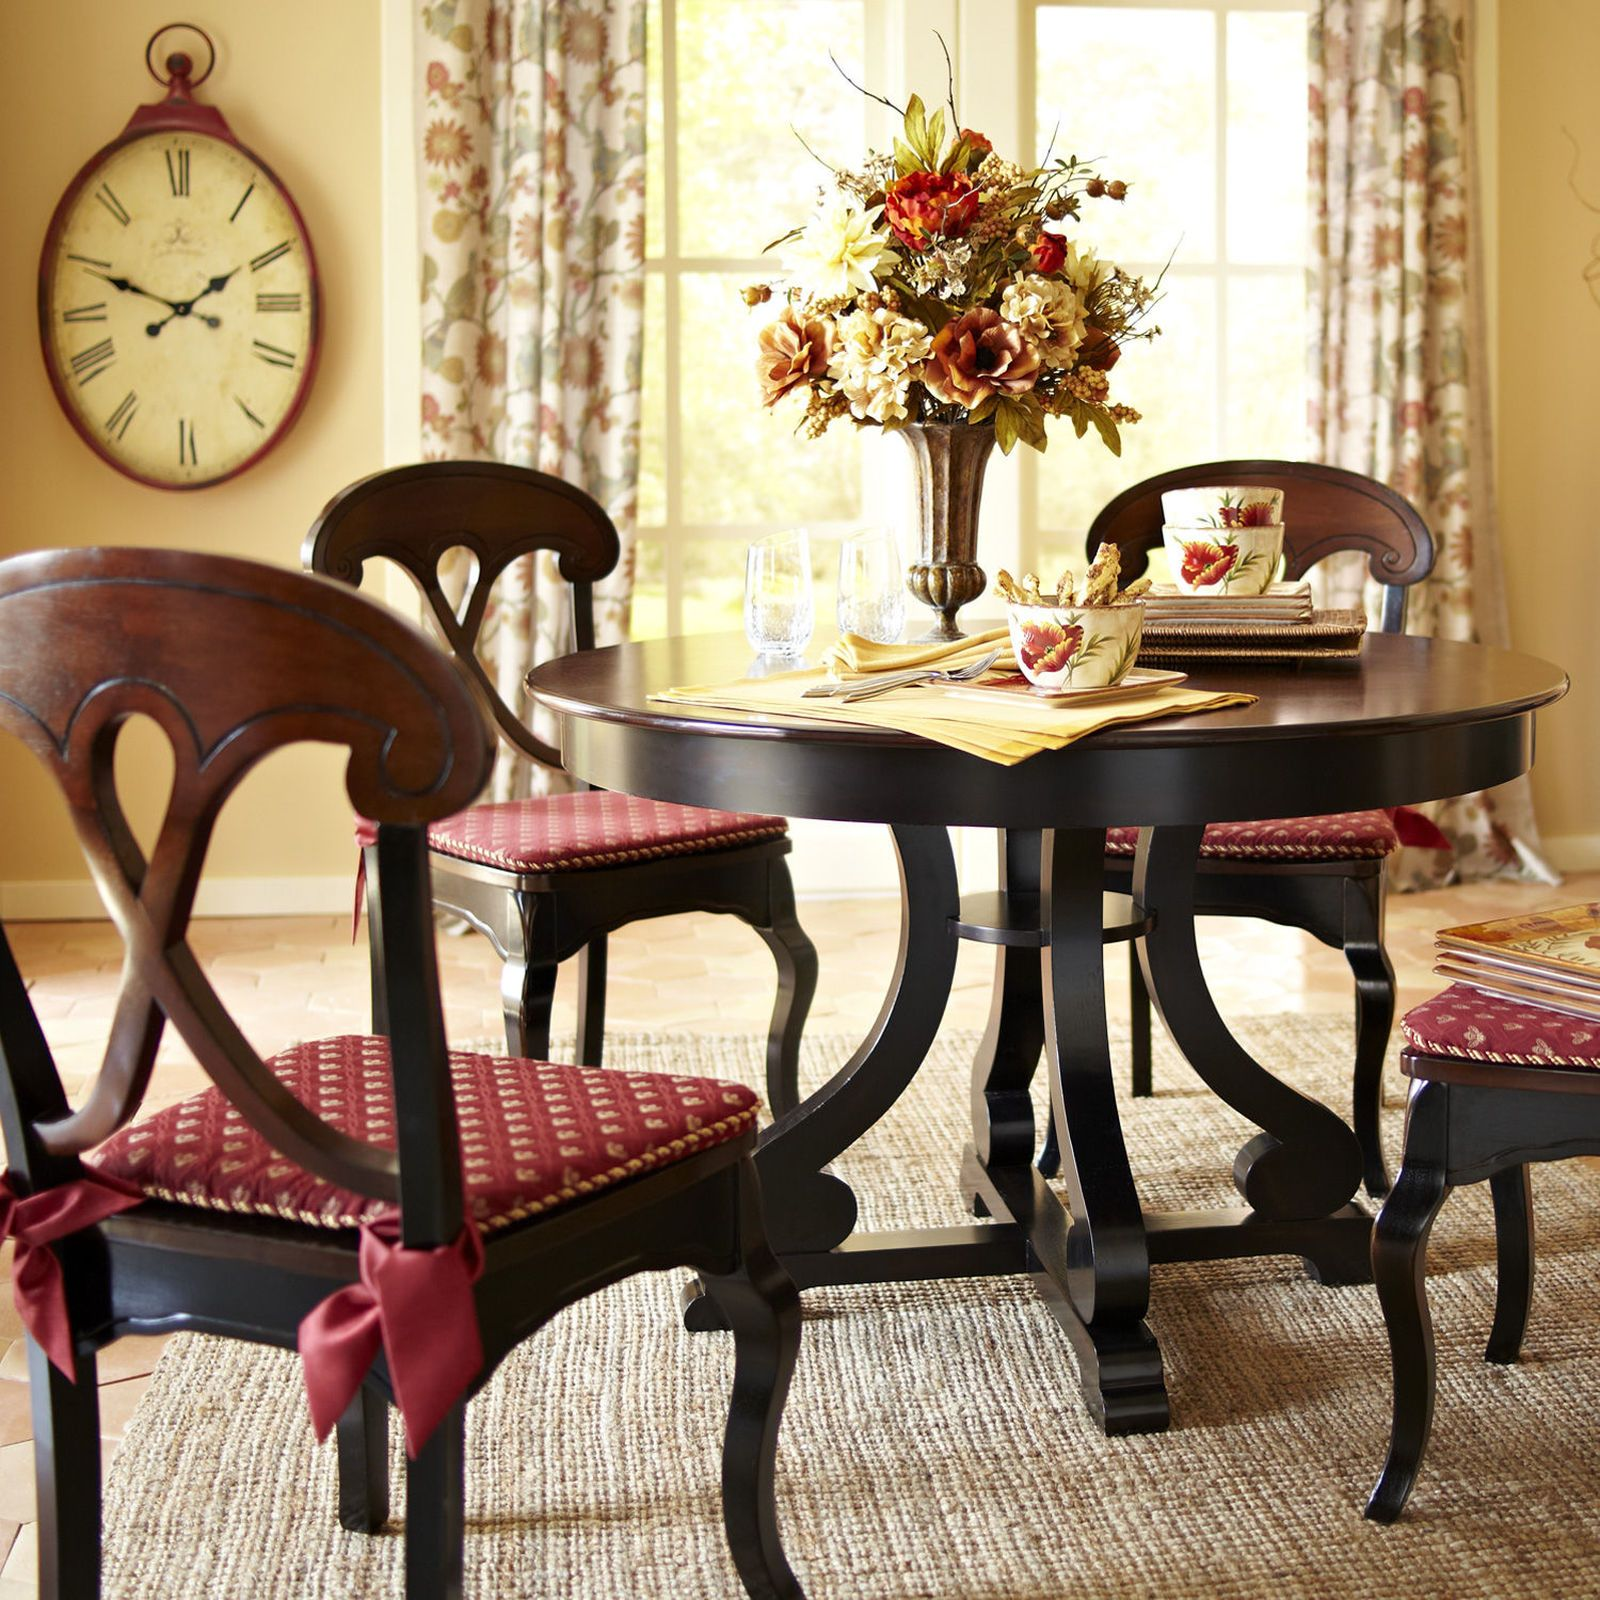 Marchella Dining Set Rubbed Black Pier 1 Imports Dining Room Table Brown Dining Table Dining Chairs